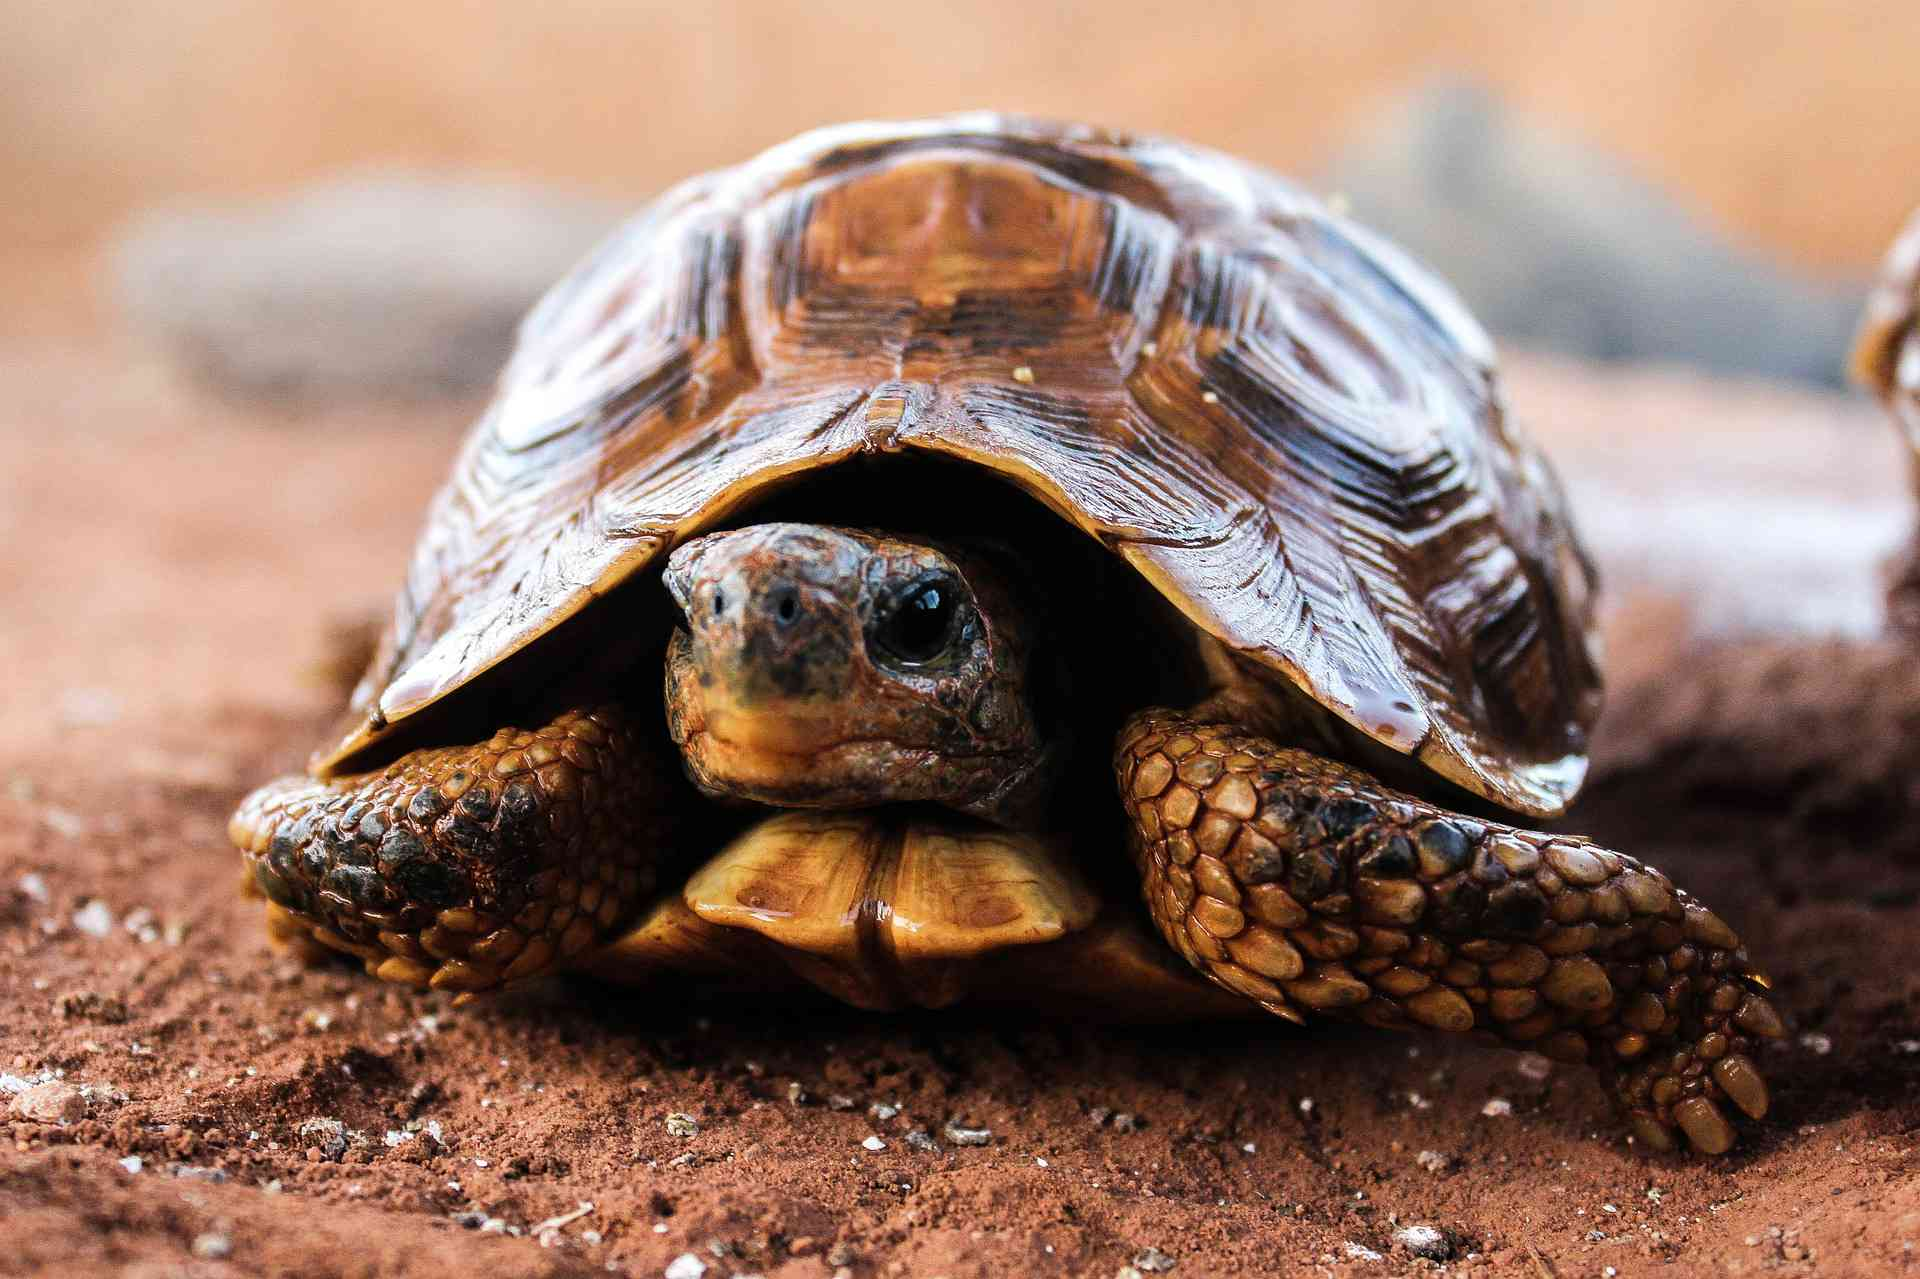 10 Facts About Turtles and Tortoises